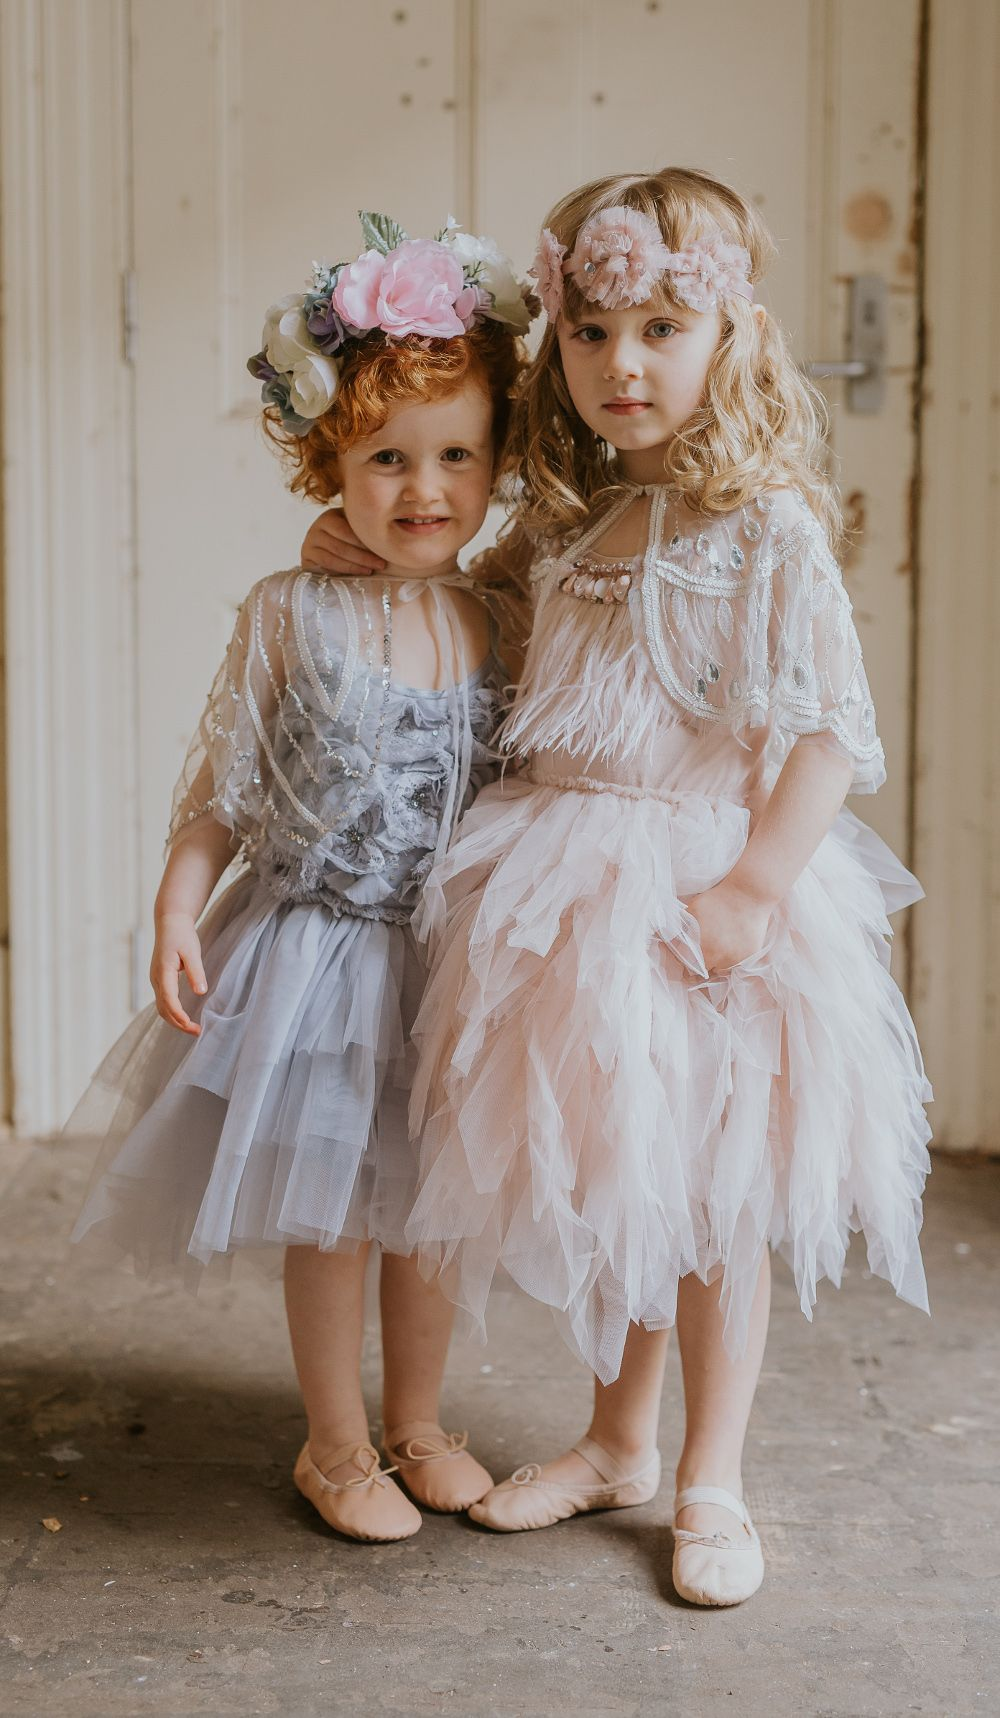 Rent designer wedding dress  Have some fun and mix and match your flower girl outfits at your